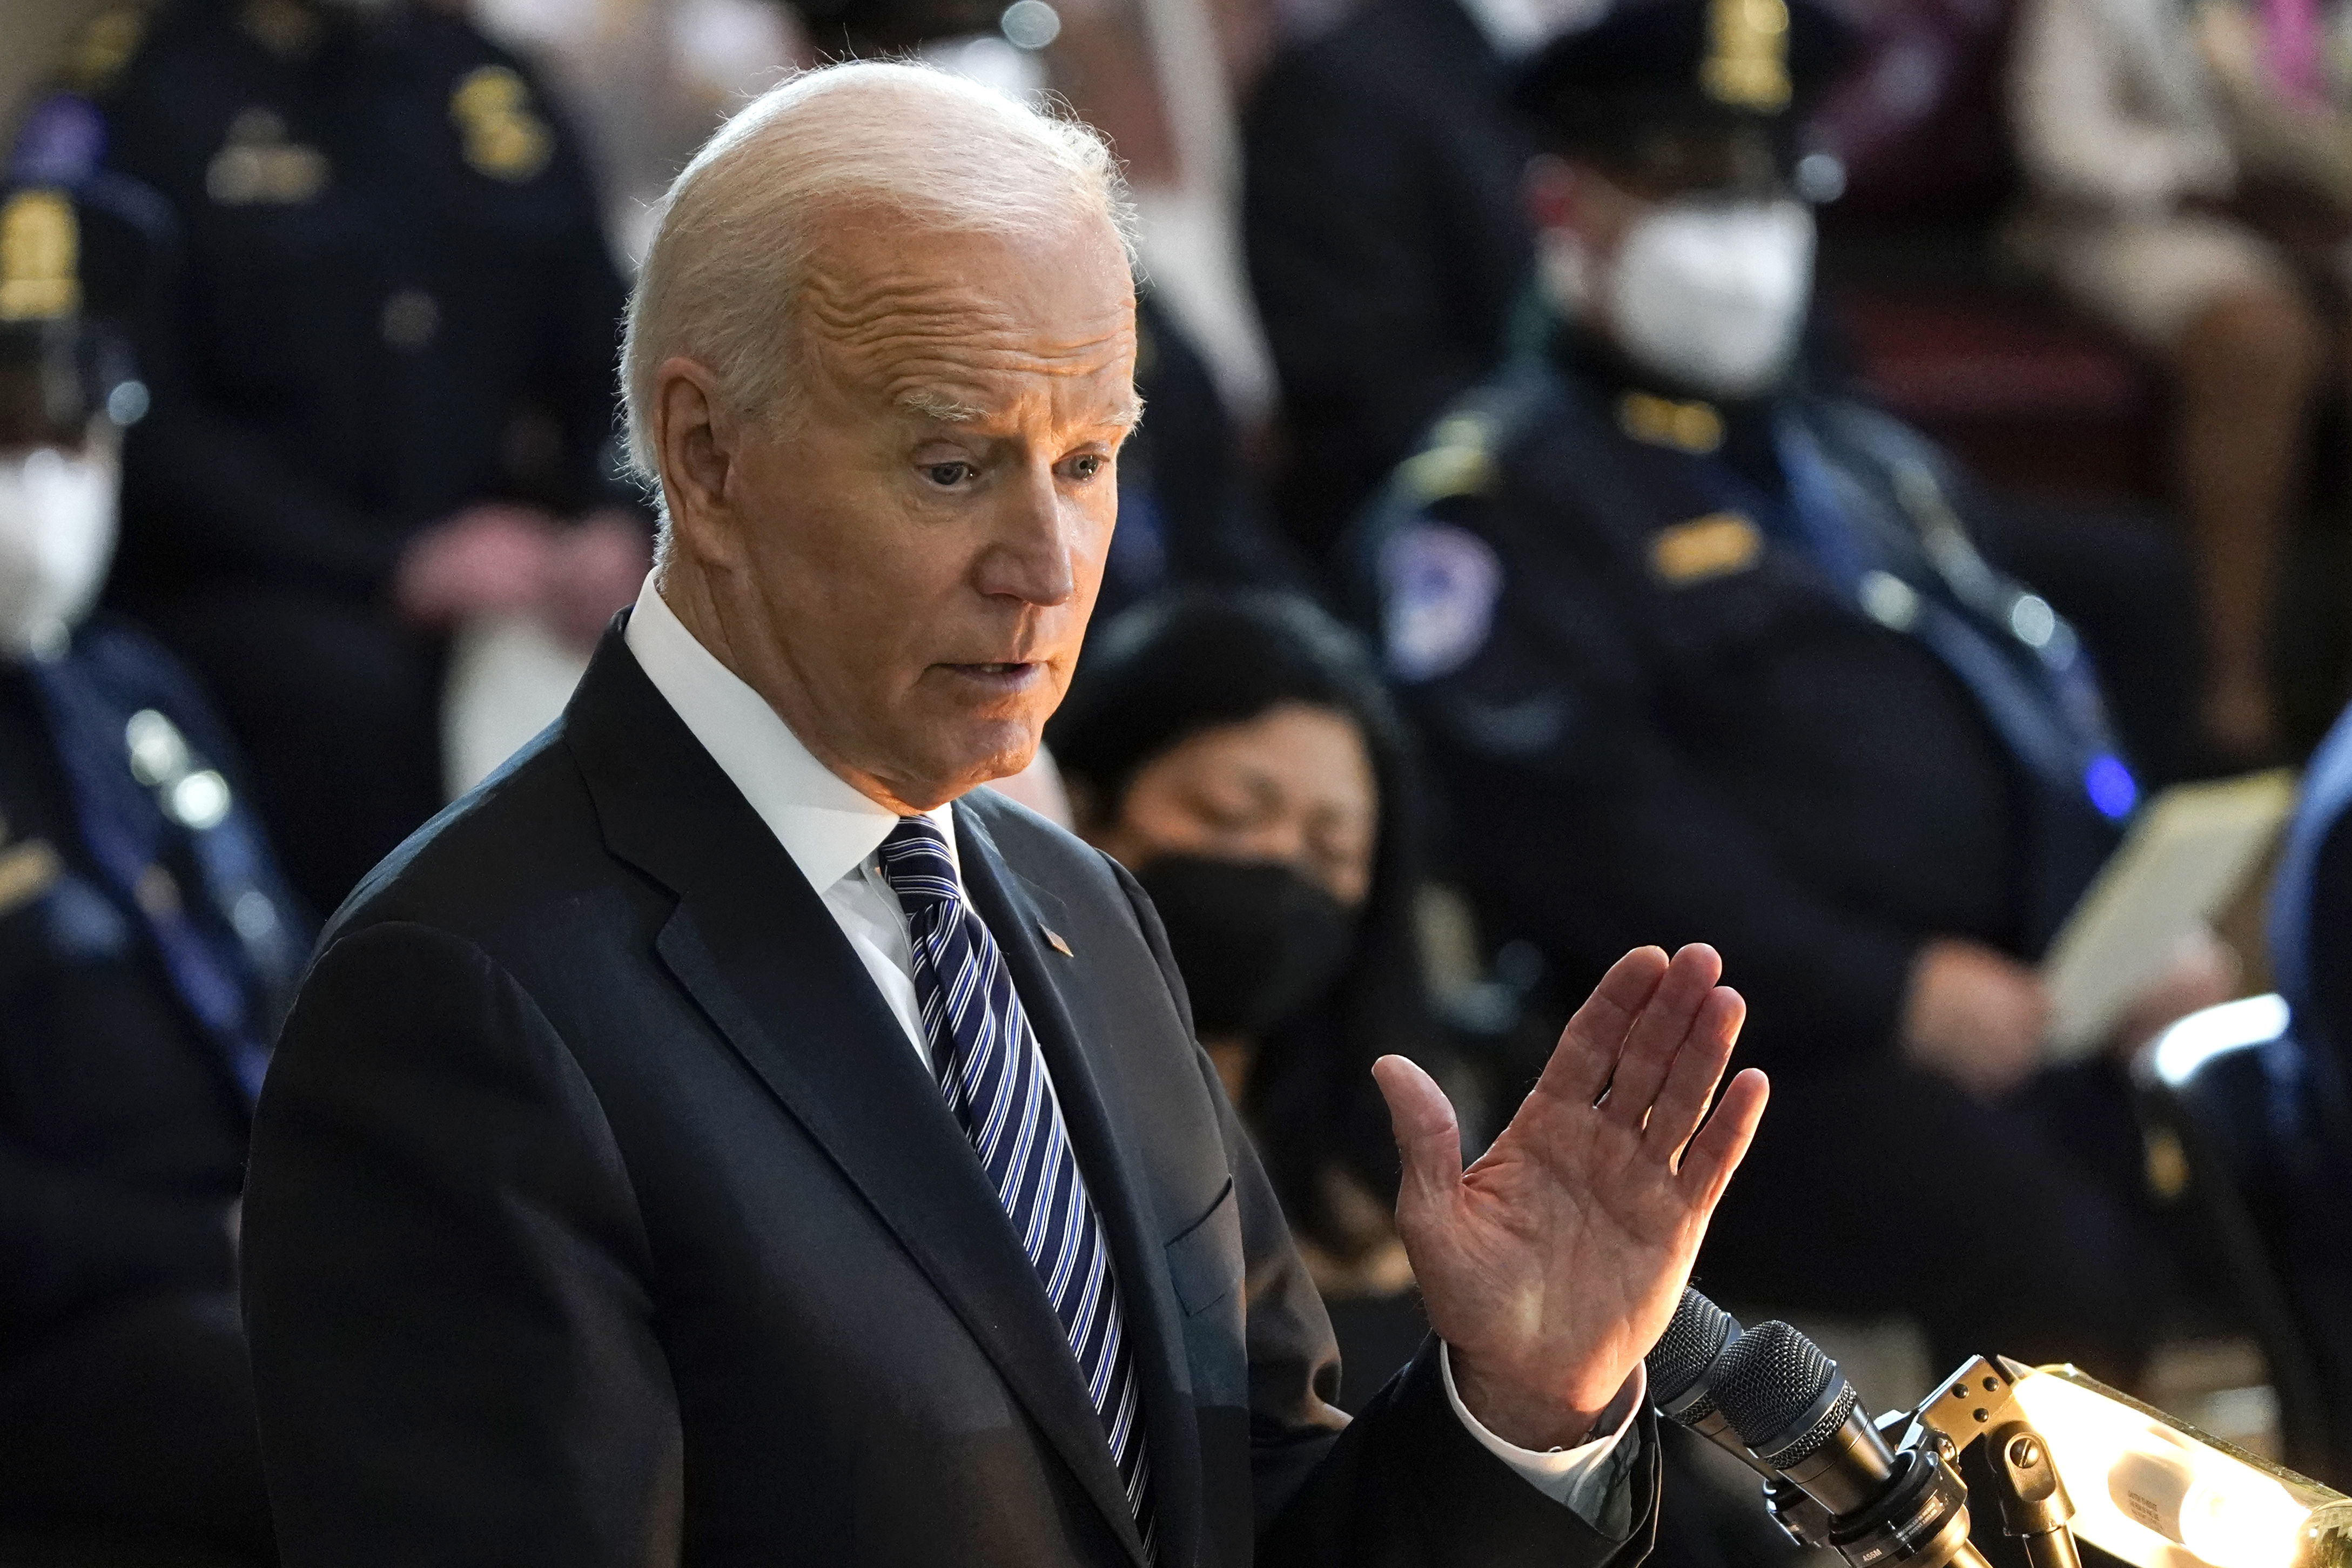 """President Joe Biden speaks during a ceremony to honor slain U.S. Capitol Police officer William """"Billy"""" Evans as he lies in honor at the Capitol in Washington, Tuesday, April 13, 2021."""